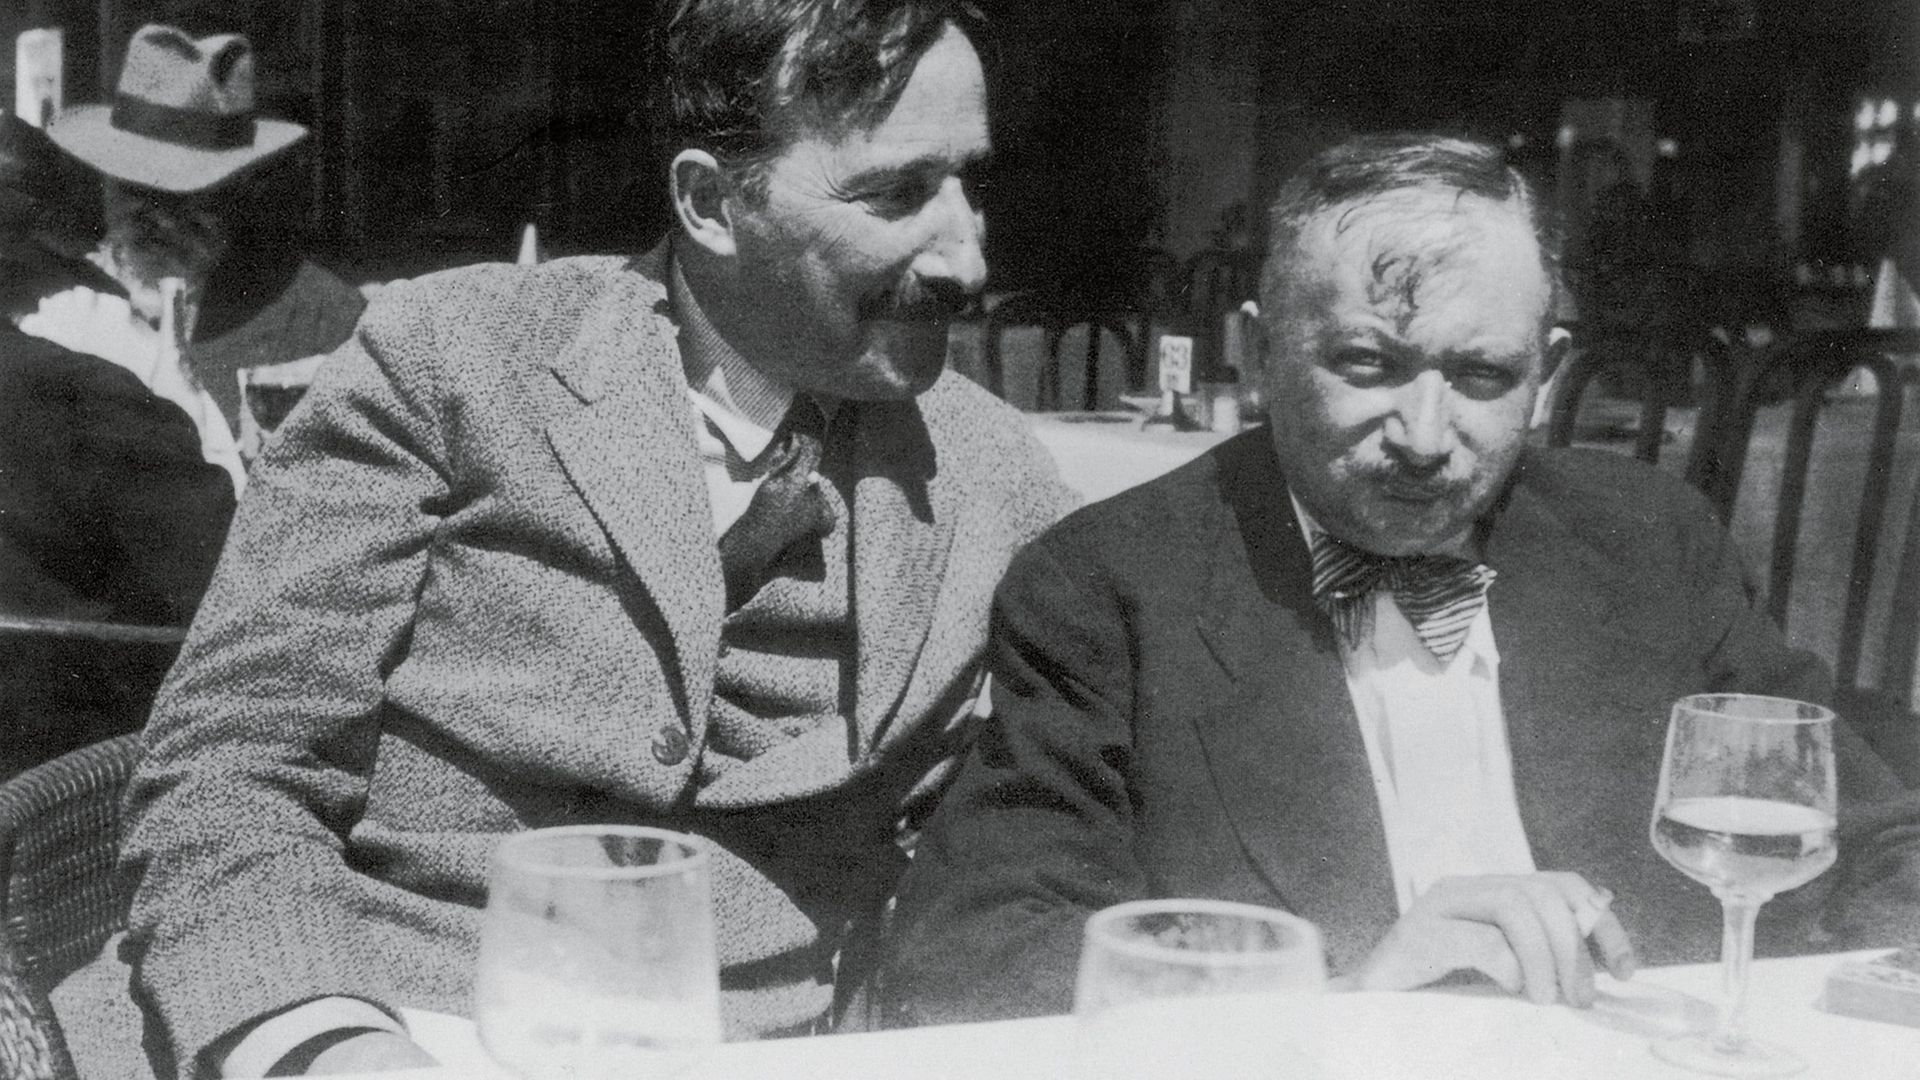 Joseph Roth (right) and Stefan Zweig in Ostende, Belgium, in 1936 - Credit: Getty Images